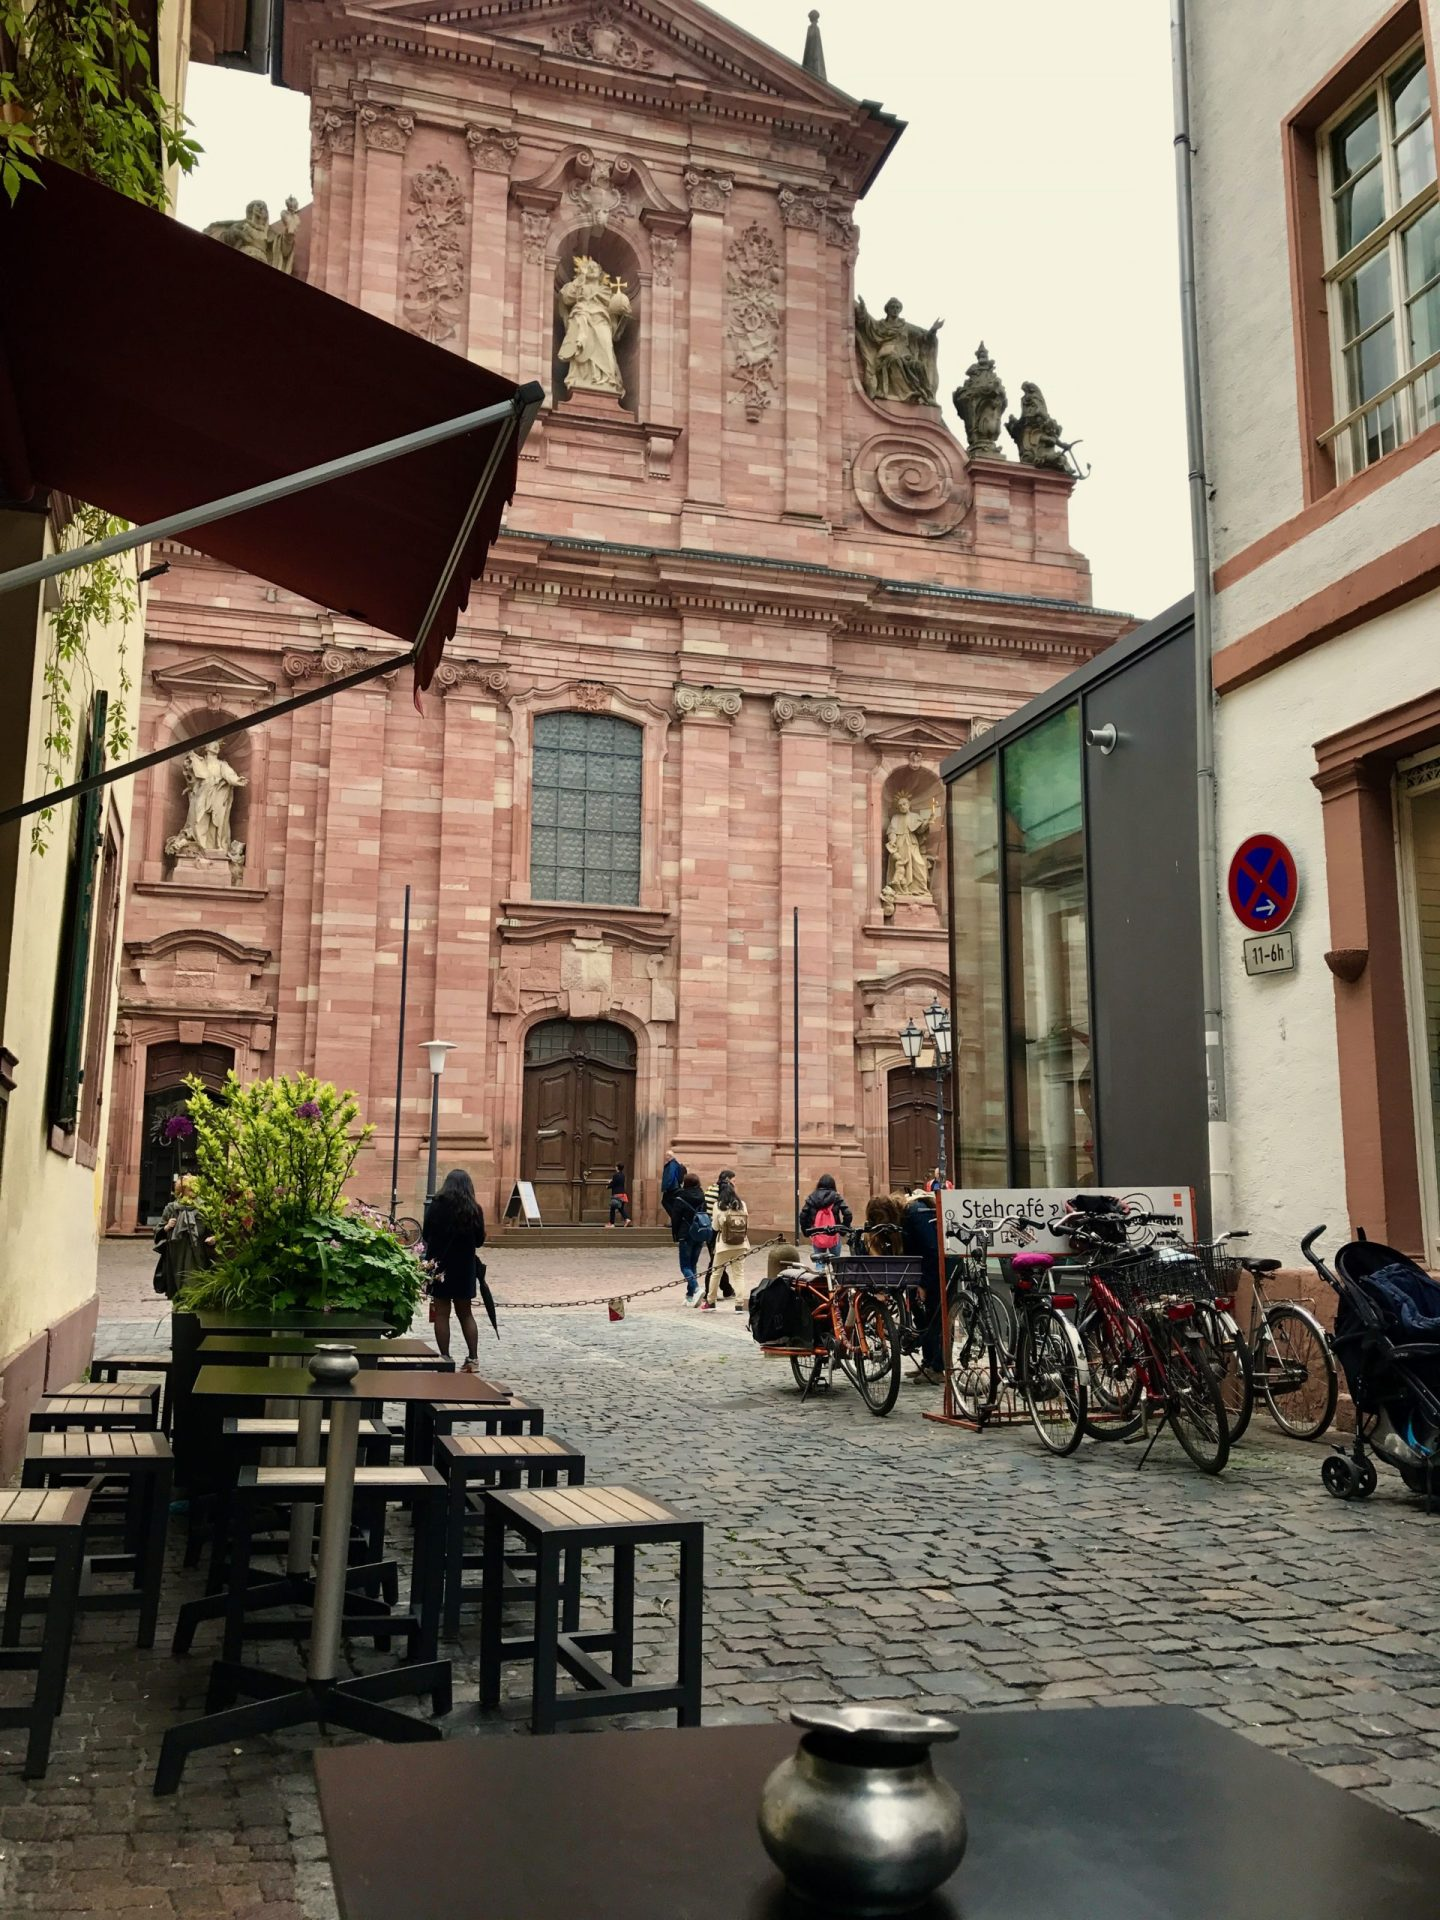 mahmouds – where to eat in heidelberg